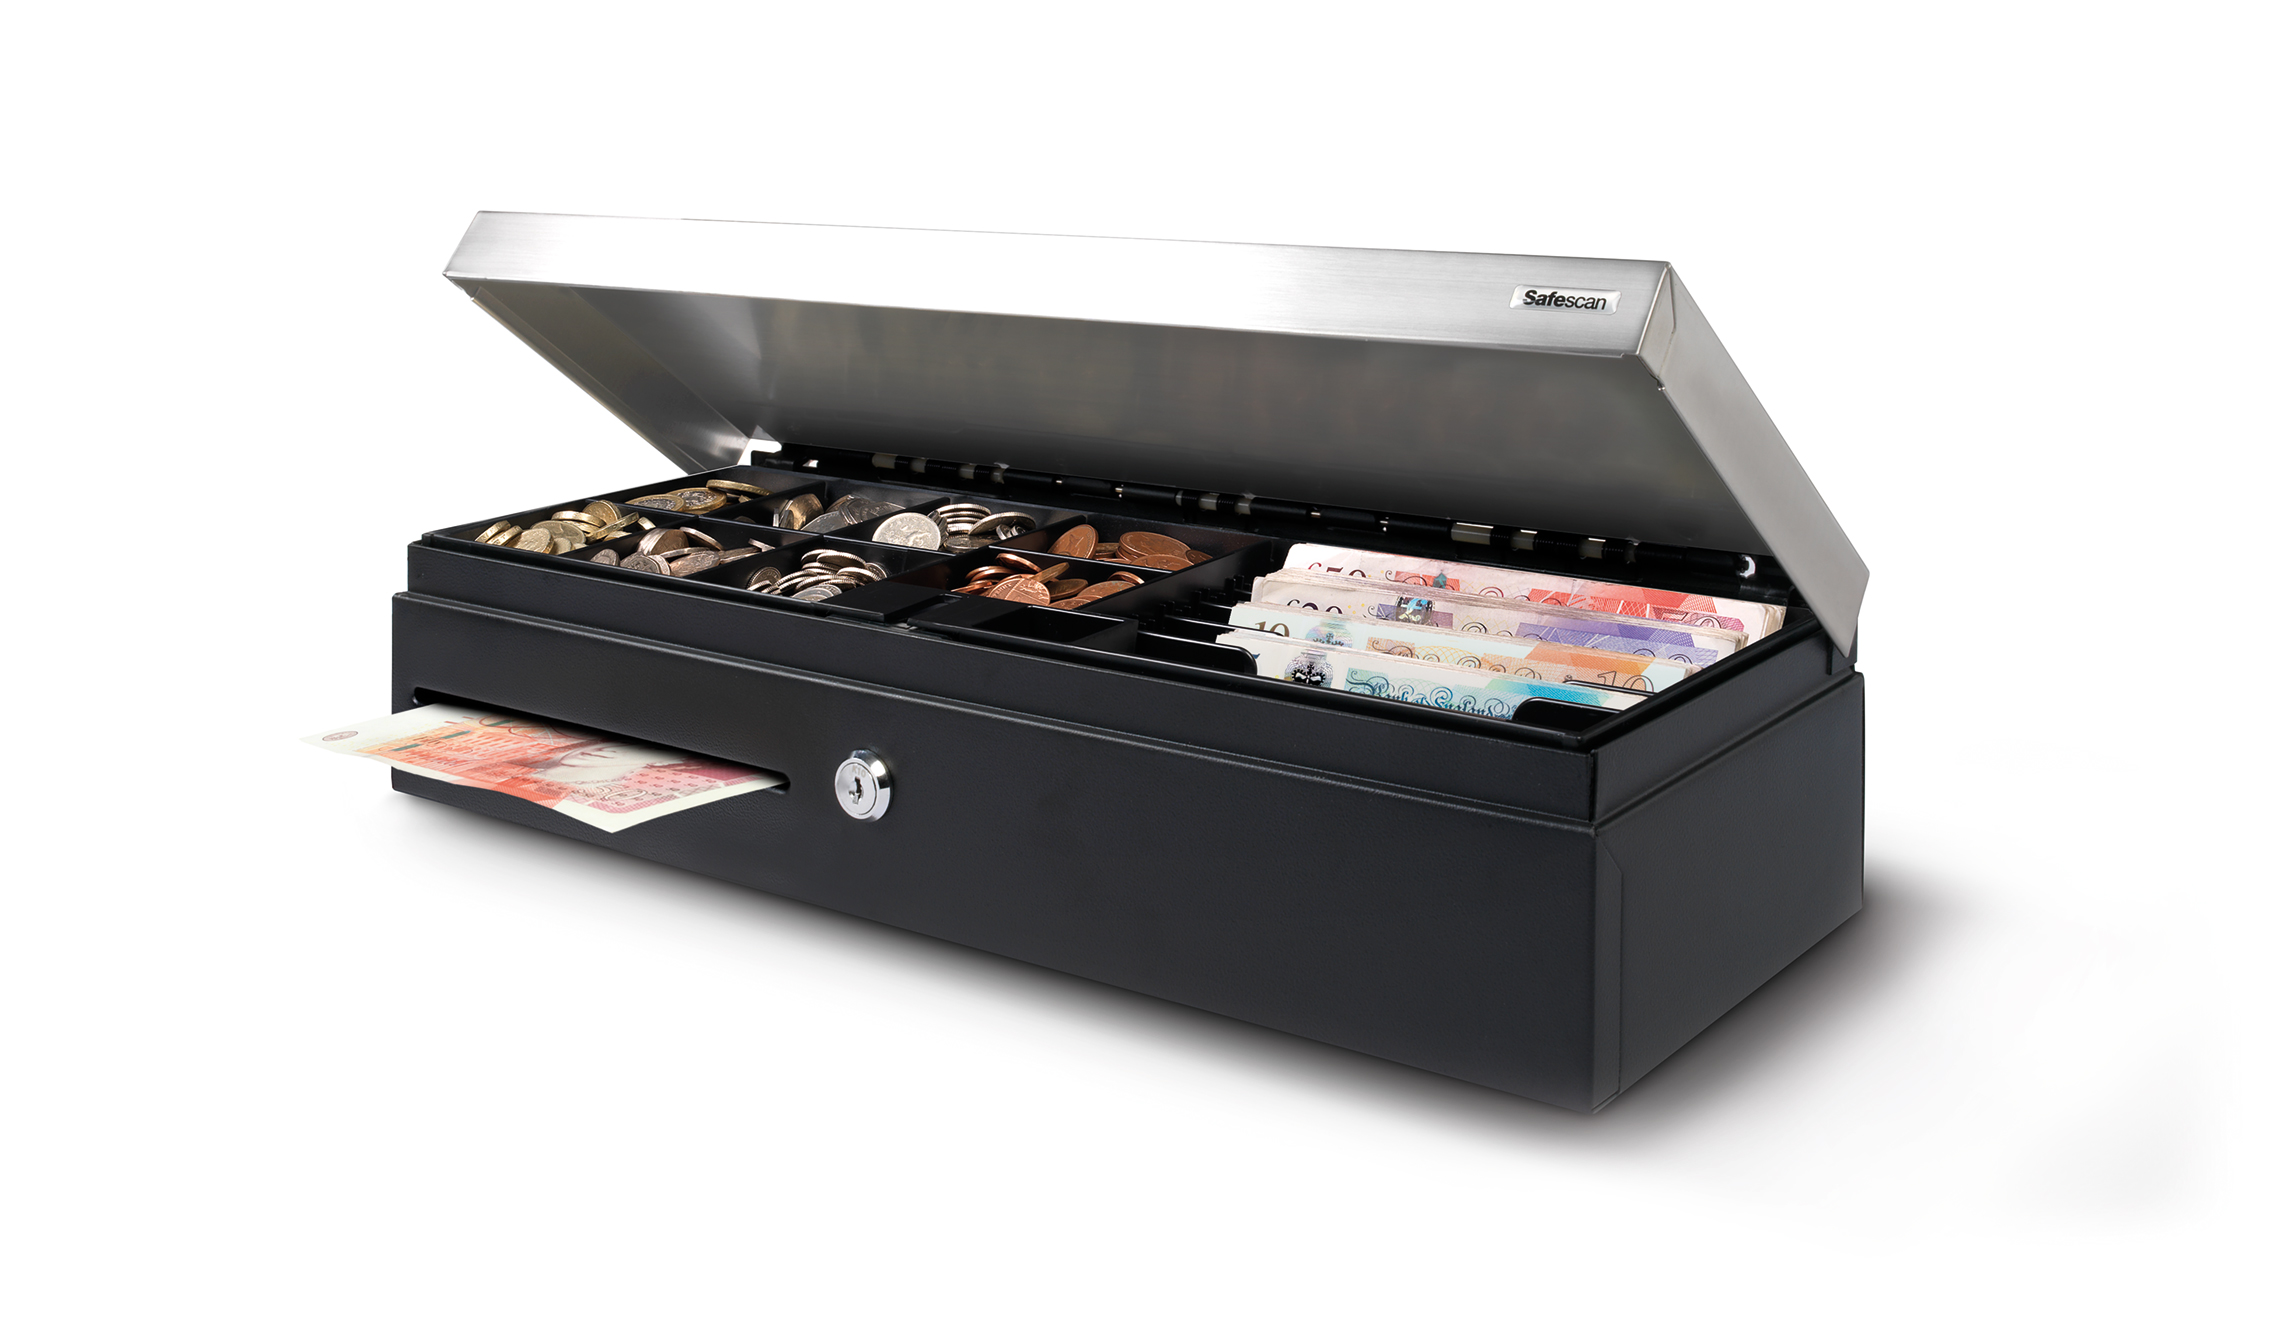 Safescan SD-4617S Cash Drawer